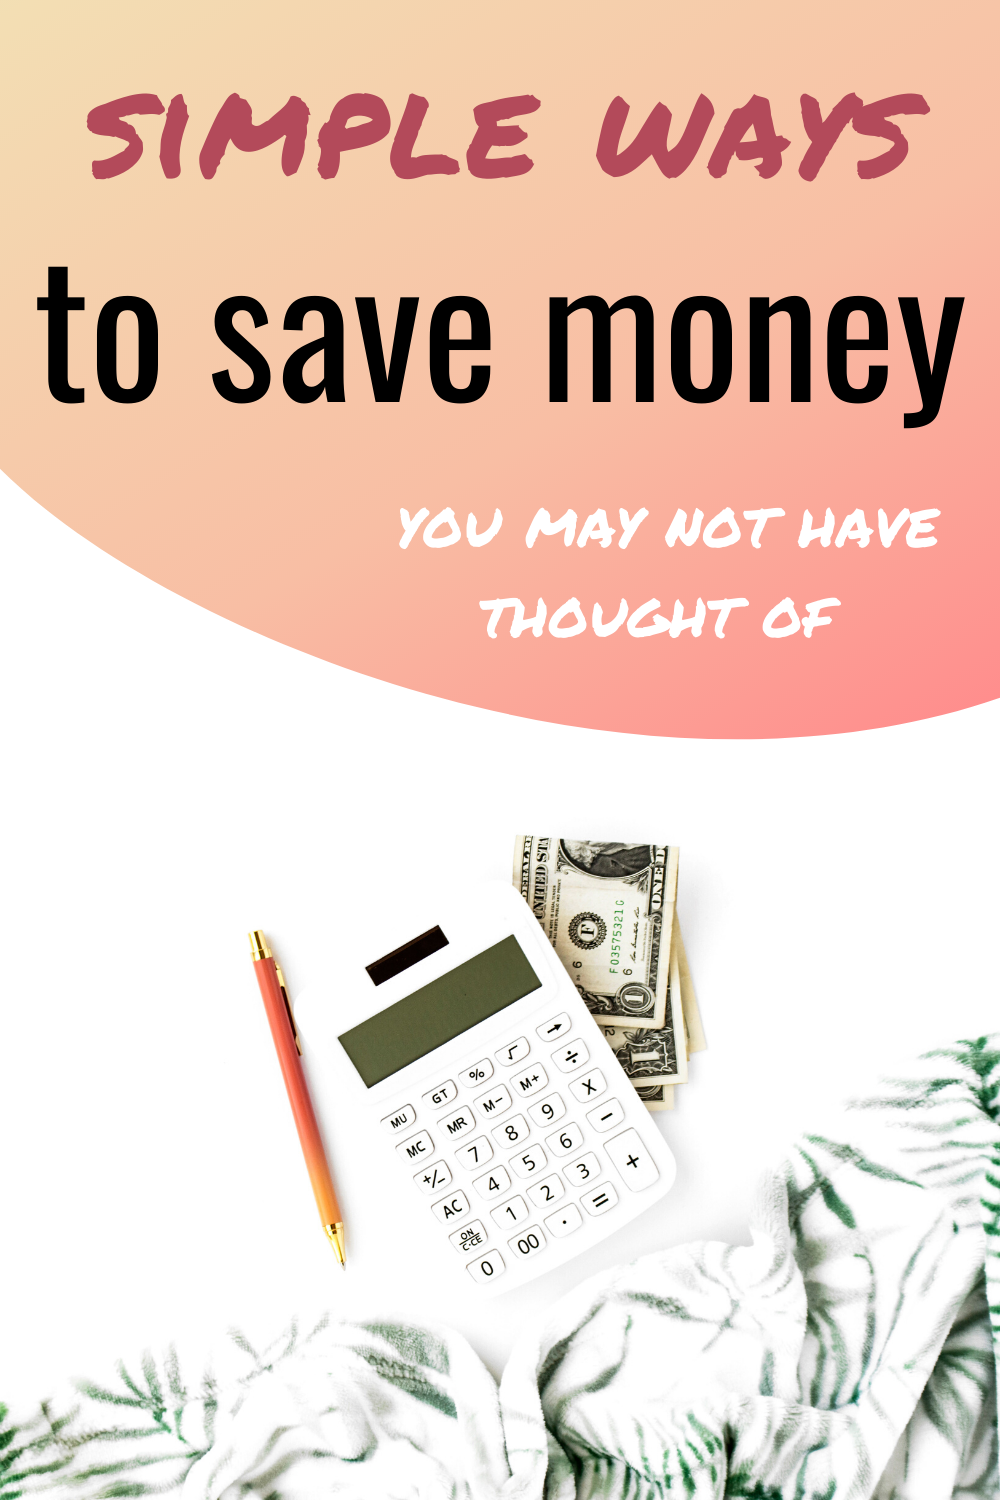 simple ways to save money you haven't thought of